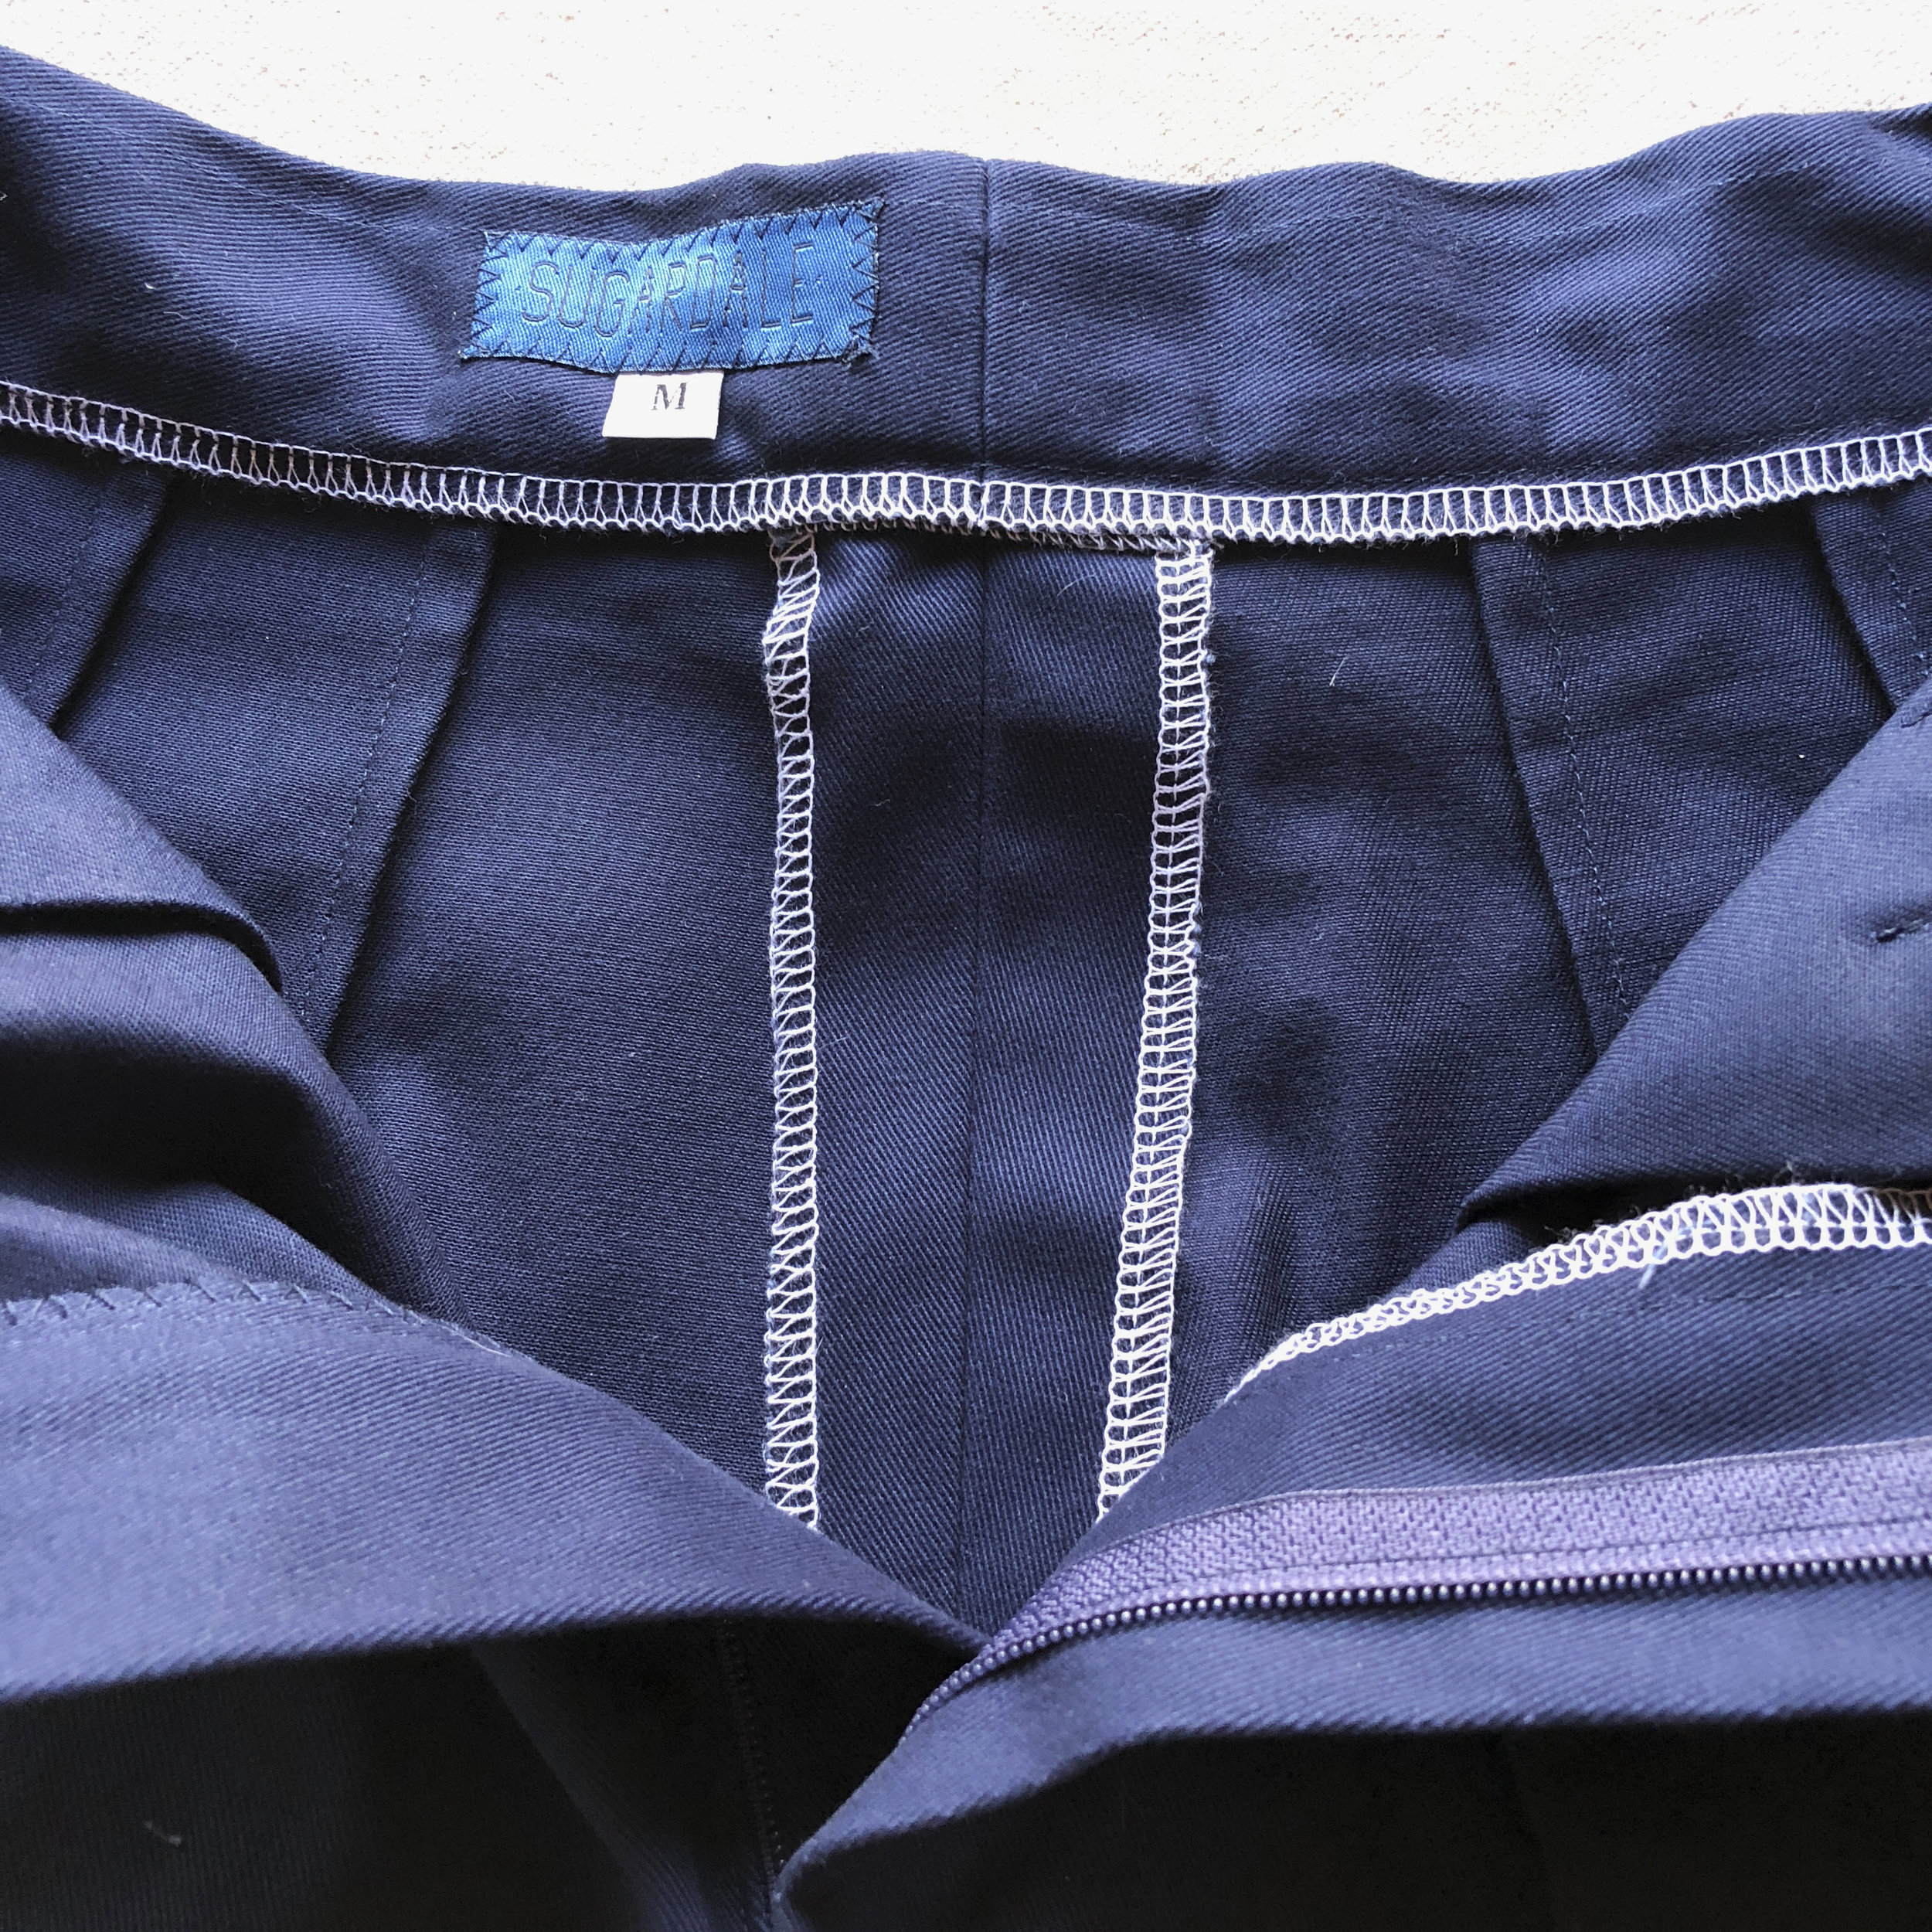 All of our garments are constructed to make alterations easy for your tailor. For example, the waistband and center back seam of the shorts are sewn together with a wide seam allowance.